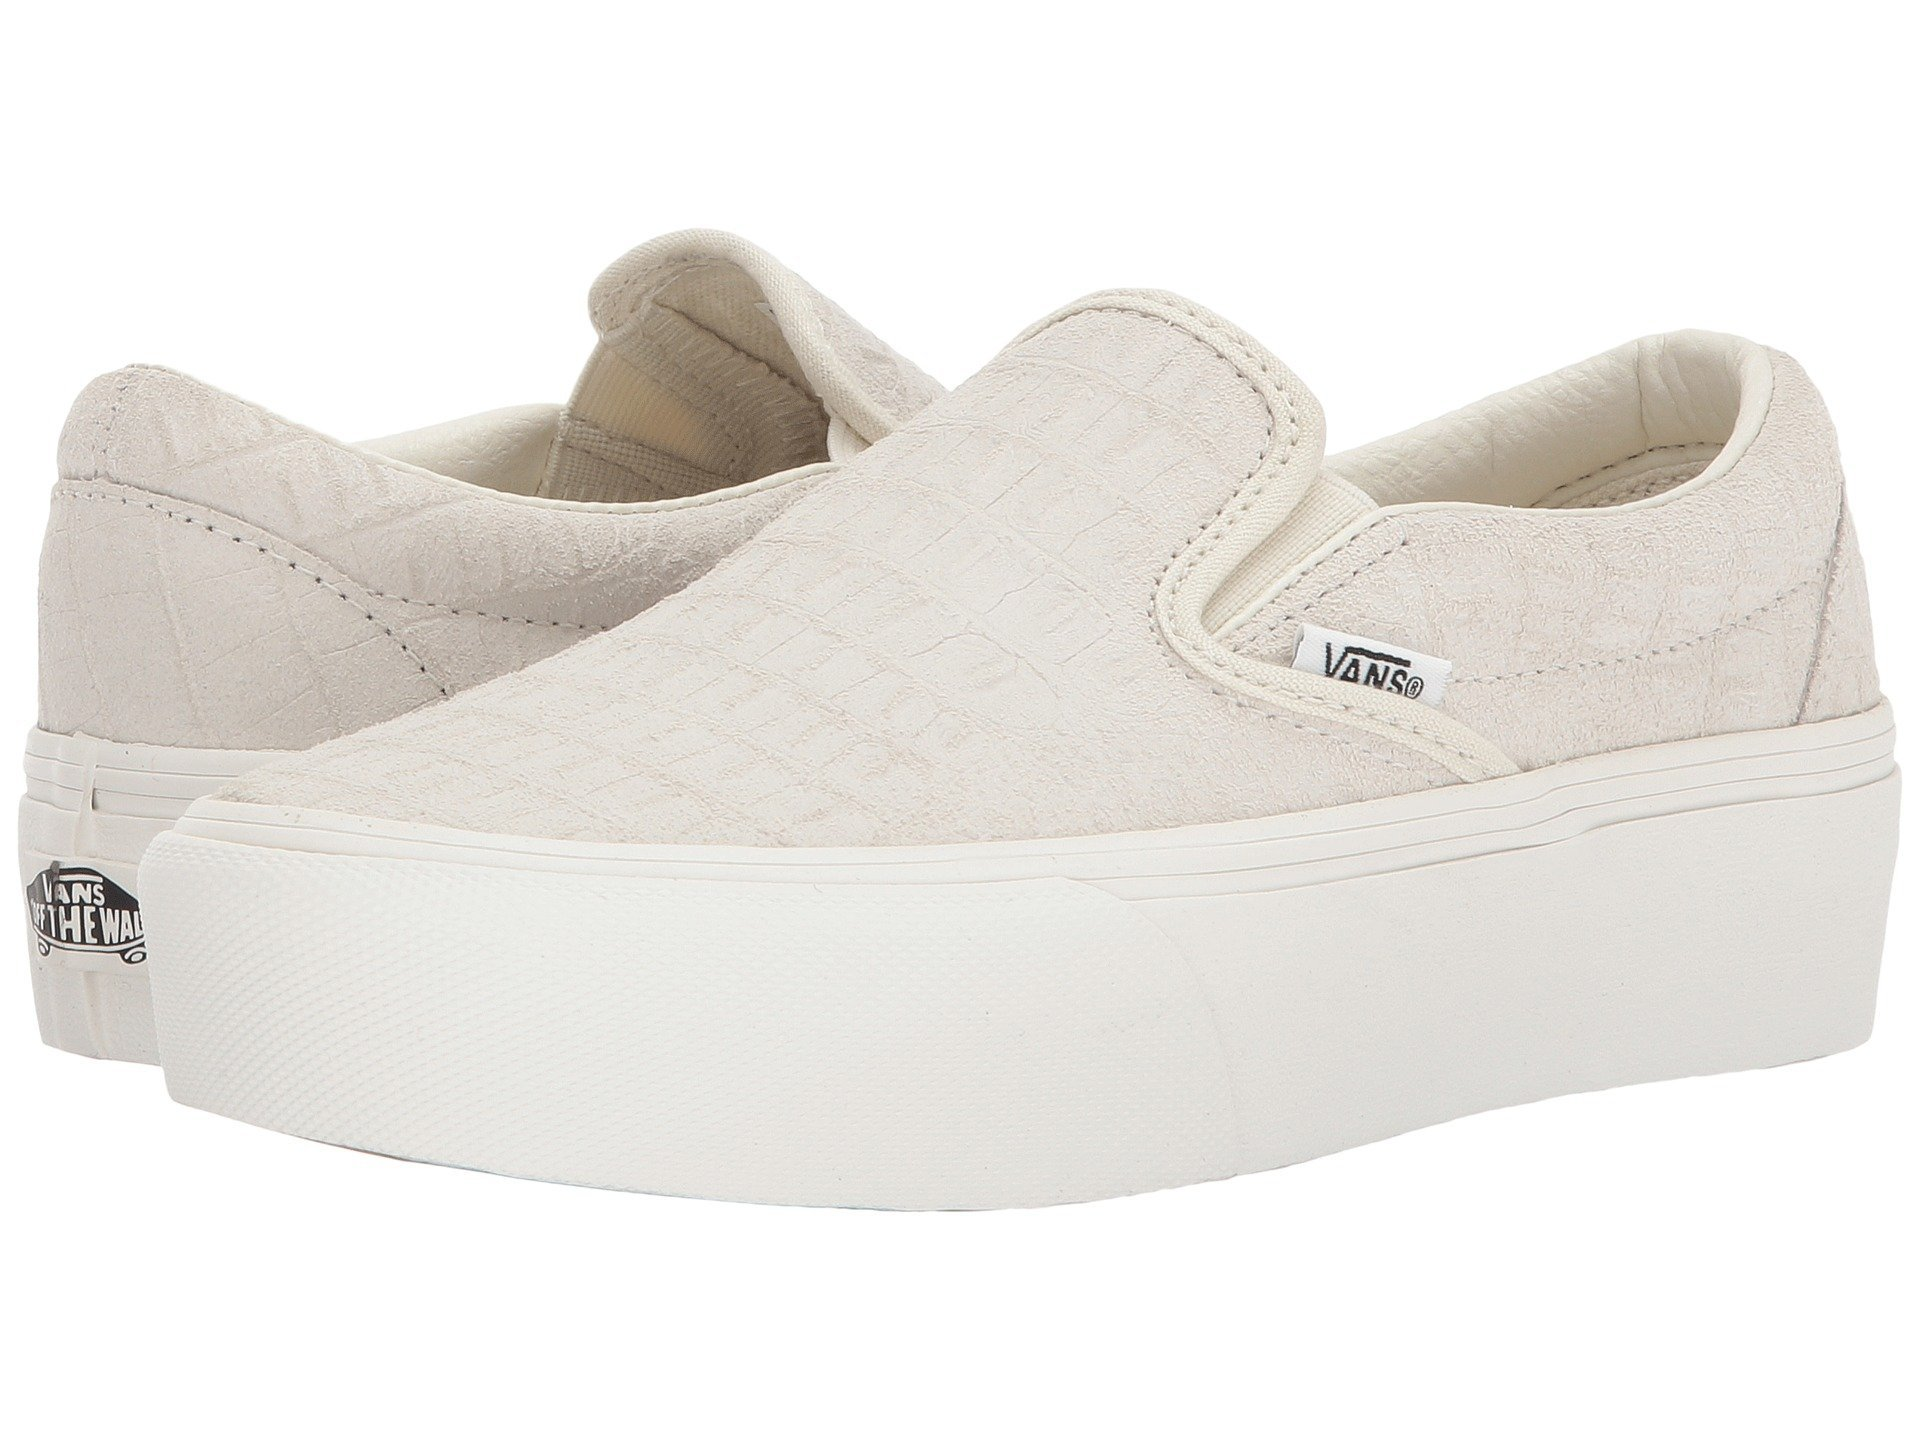 Vans Women's Classic Slip-On Platform Sneakers (7.5 Women / 6 Men M US, (Embossed) Turtledove)